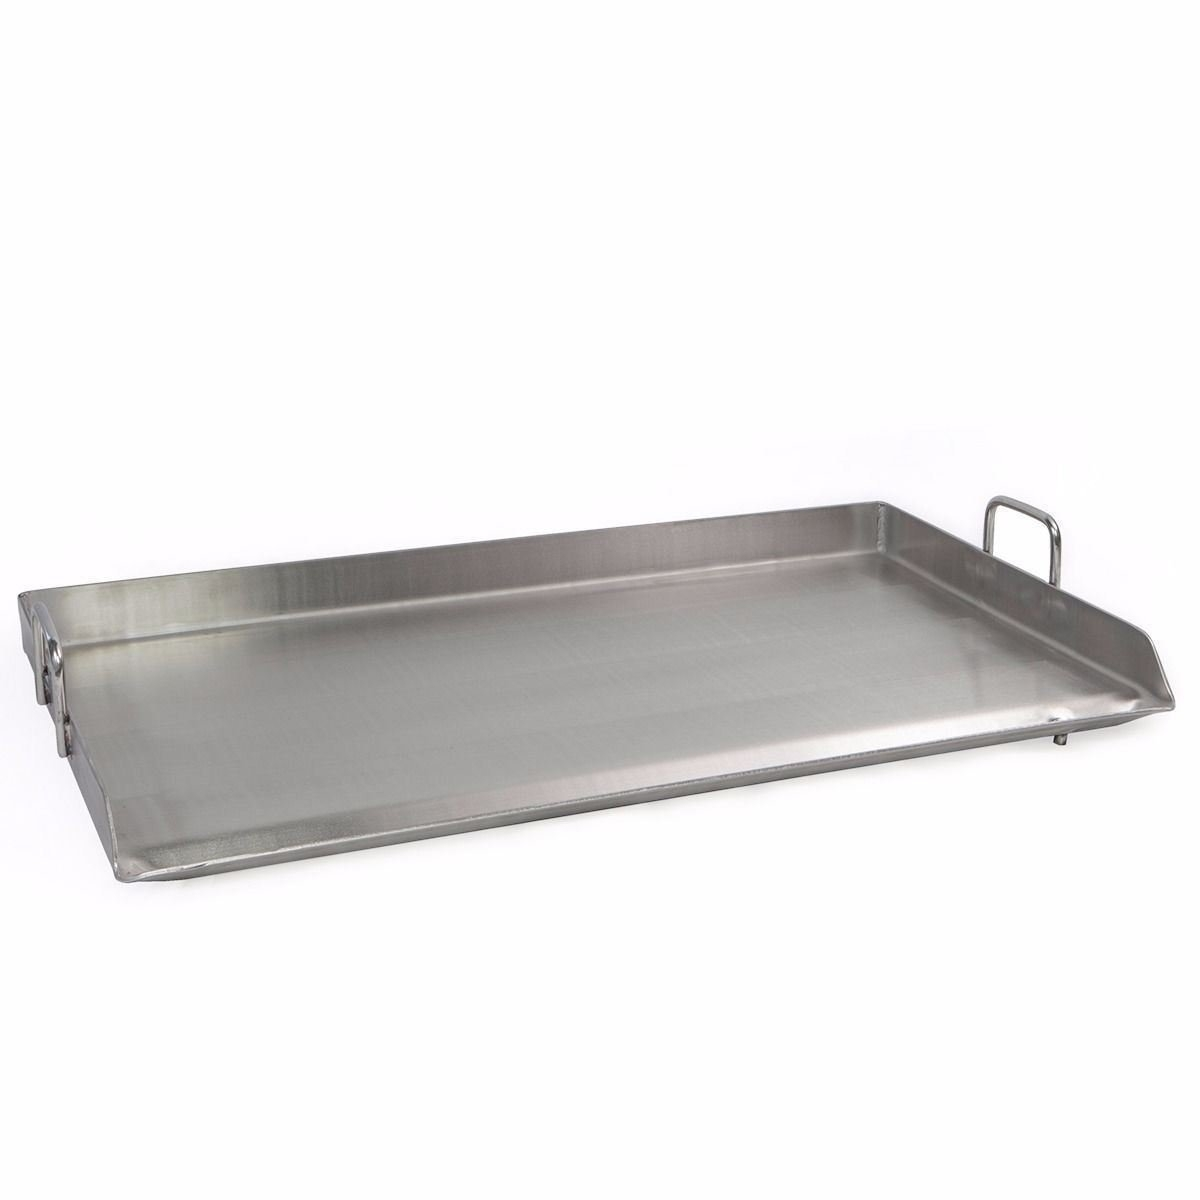 New MTN-G 32x17 Stainless Steel Comal Flat Top BBQ Cookin...